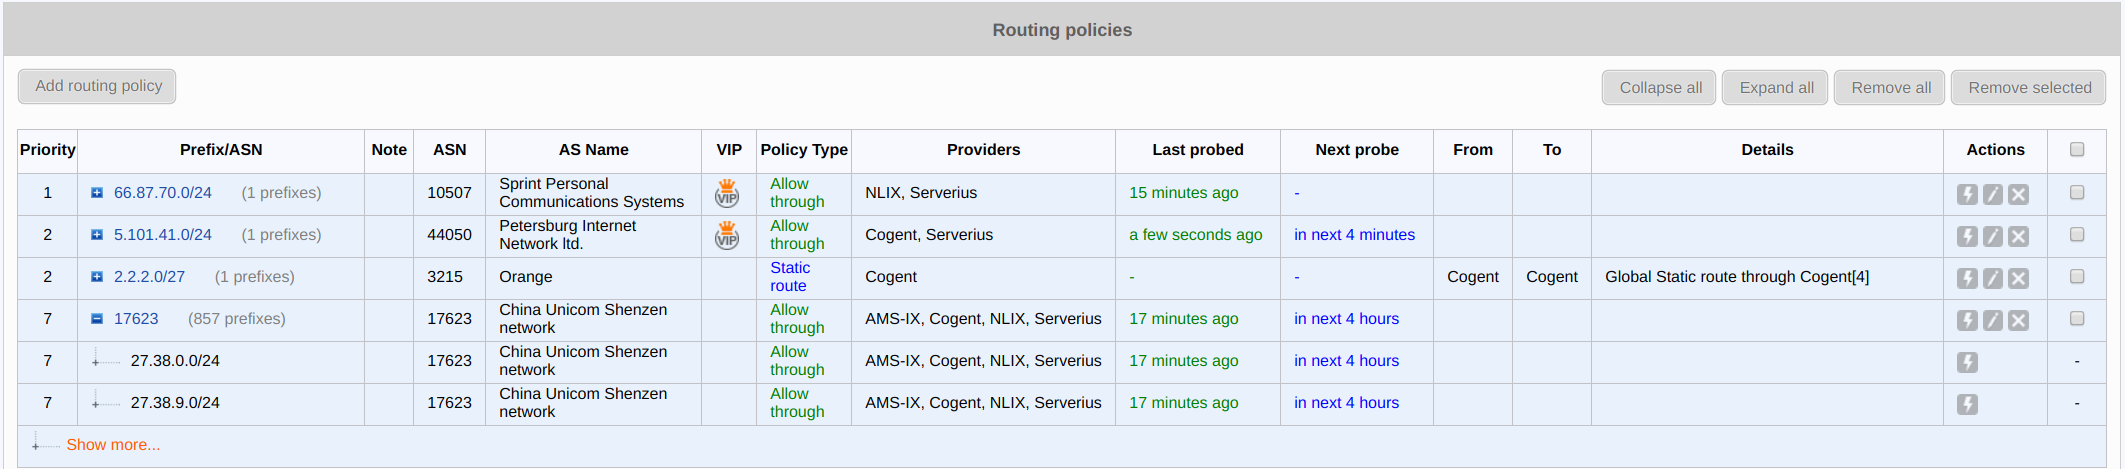 figure screenshots/routing-policies.png